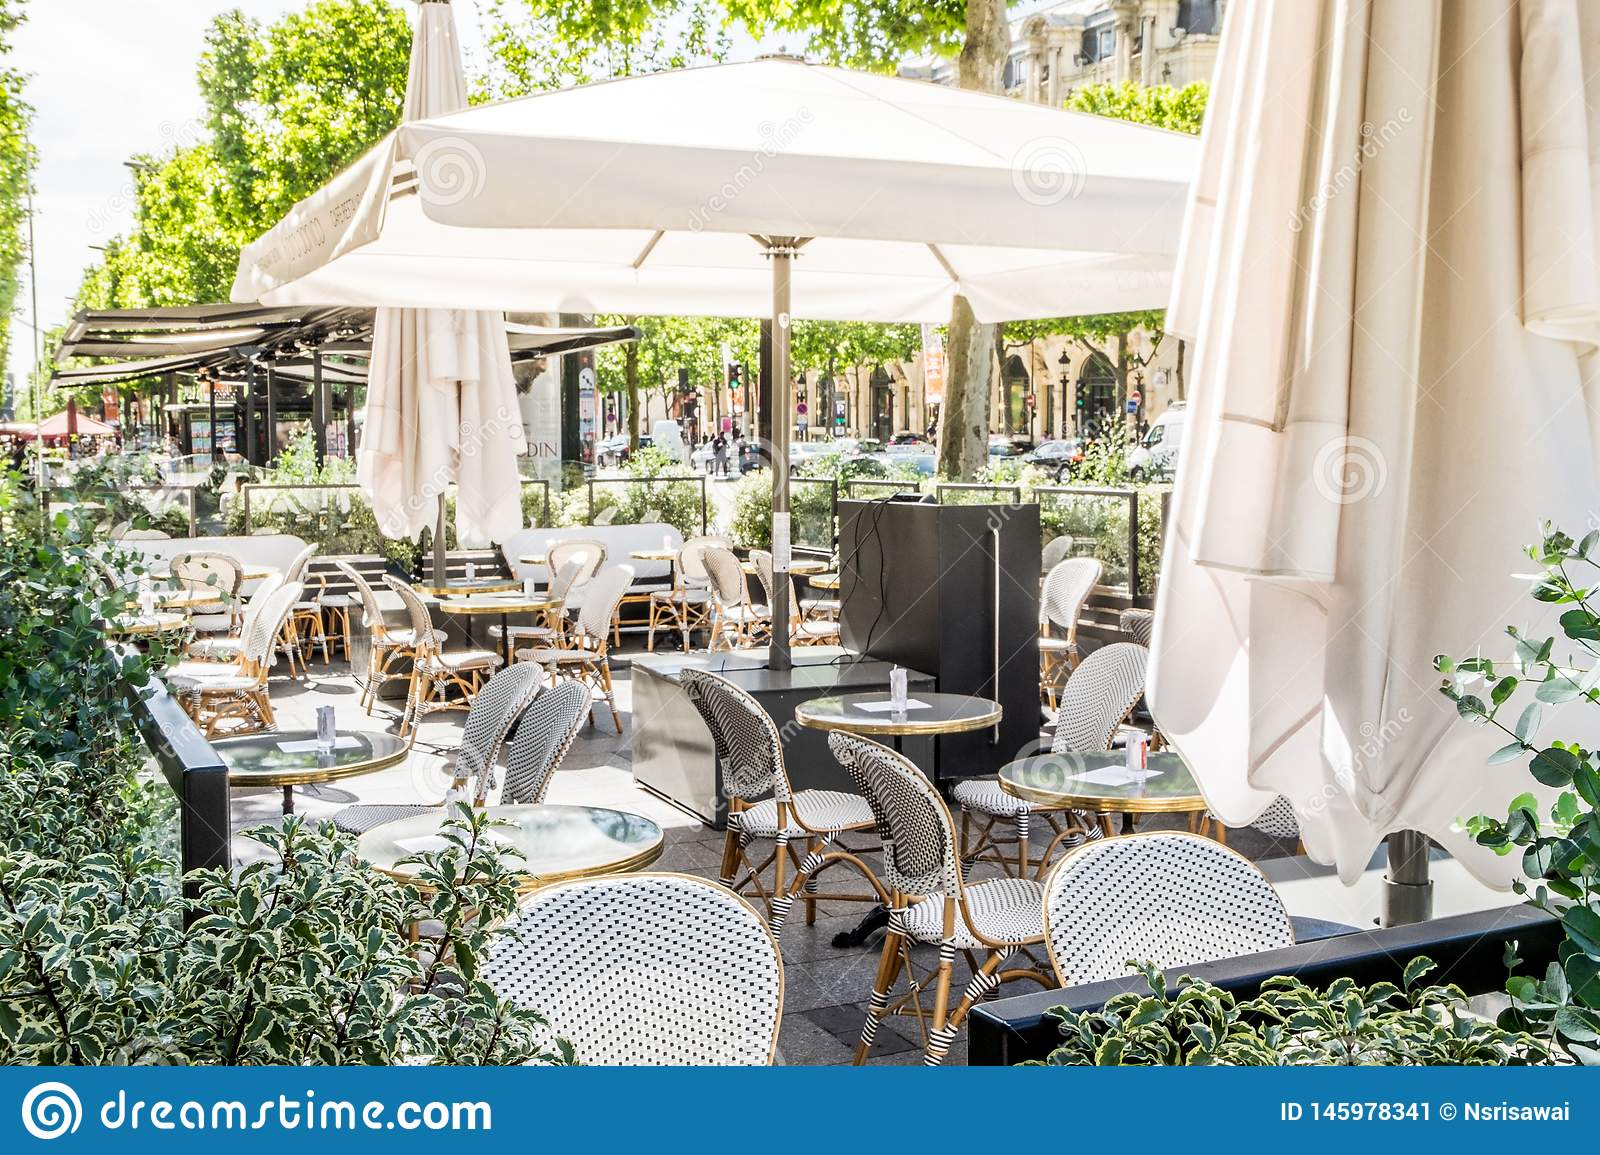 An Outdoor Cafe Or Restaurant In Paris France Stock Image Image Of Blur Decoration 145978341